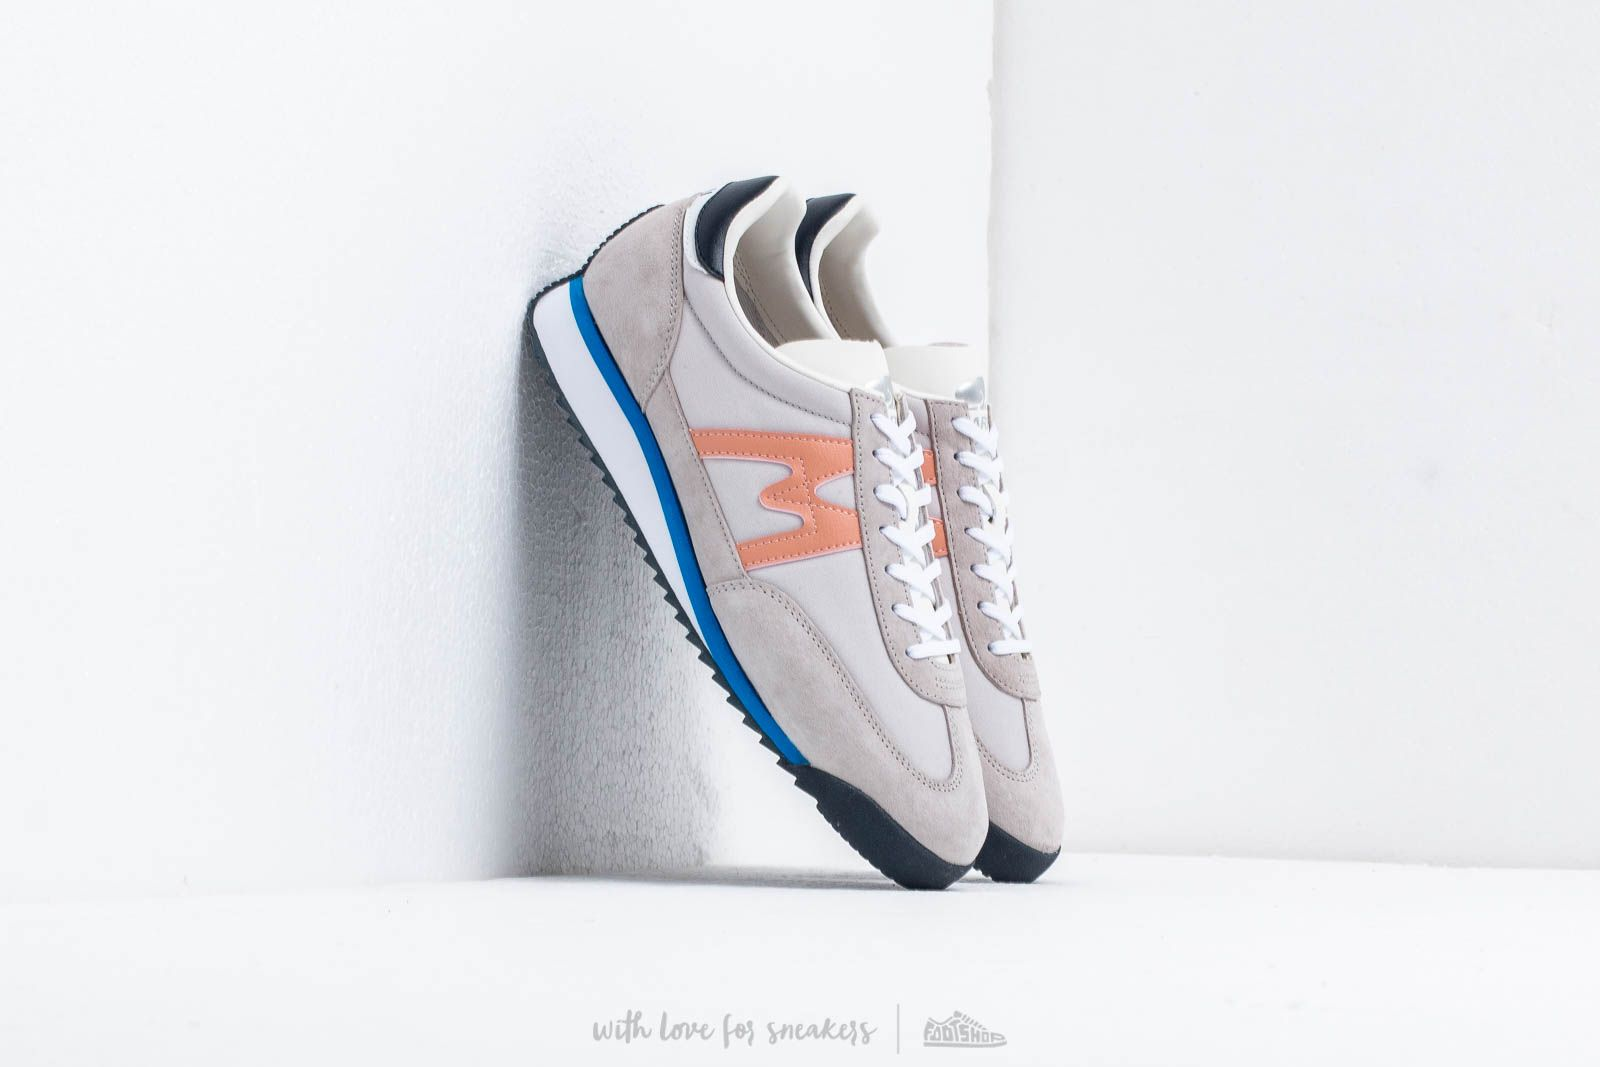 Мъжки кецове и обувки Karhu Championair Lunar Rock/ Muted Clay